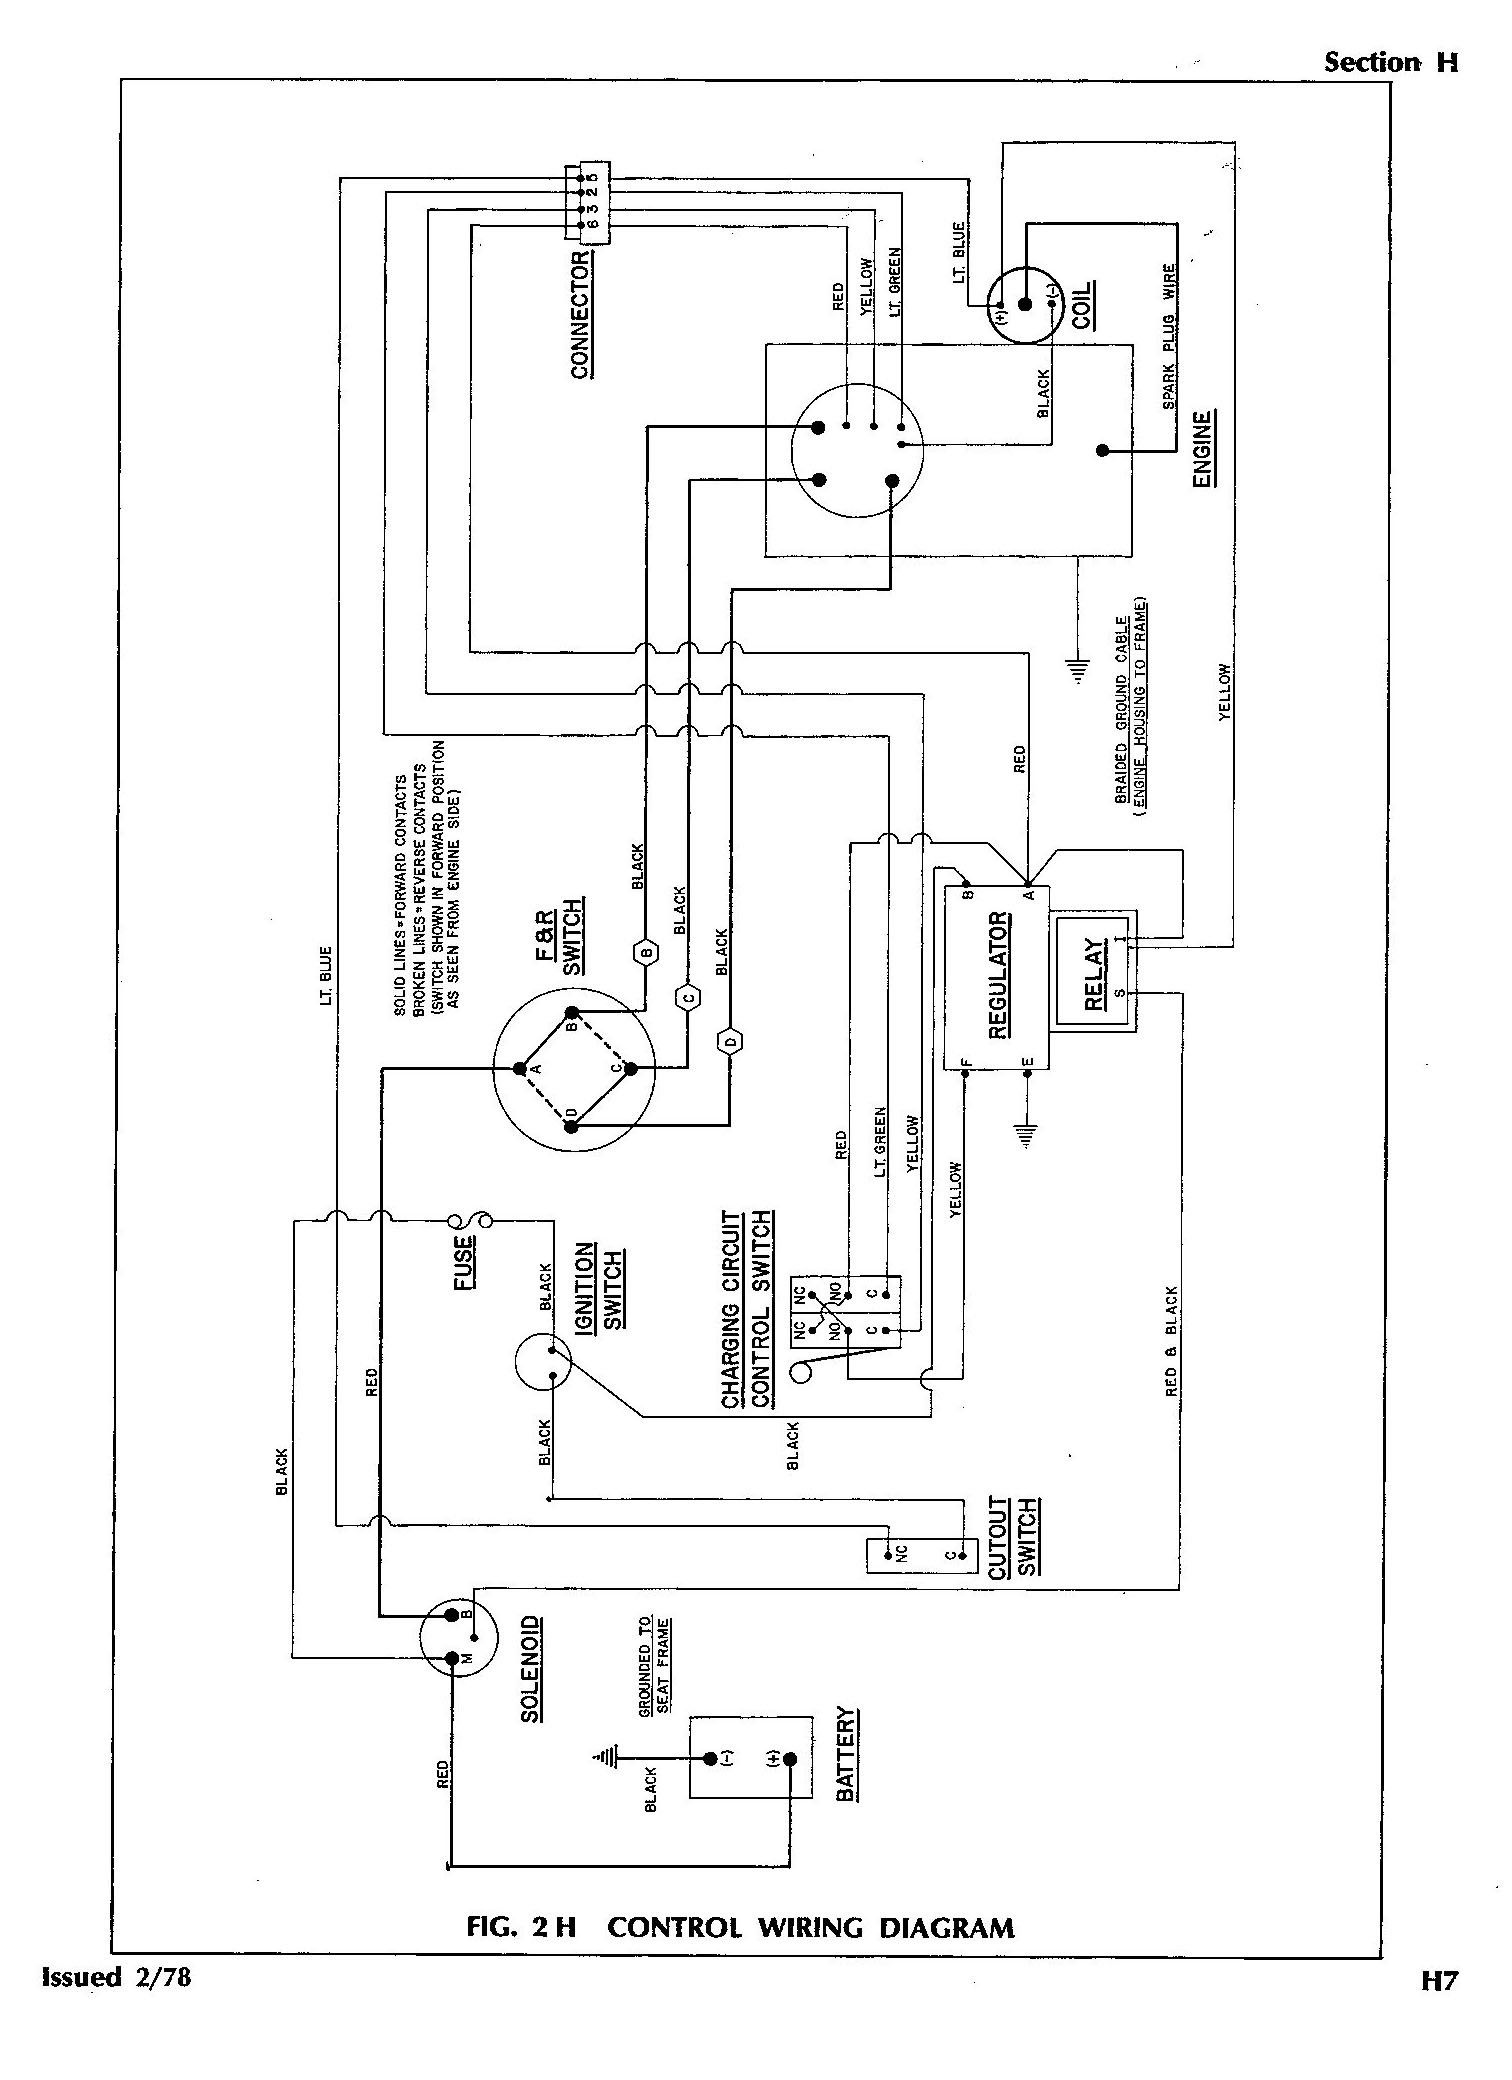 Wiring Diagram For Club Car Lights Con Imagenes